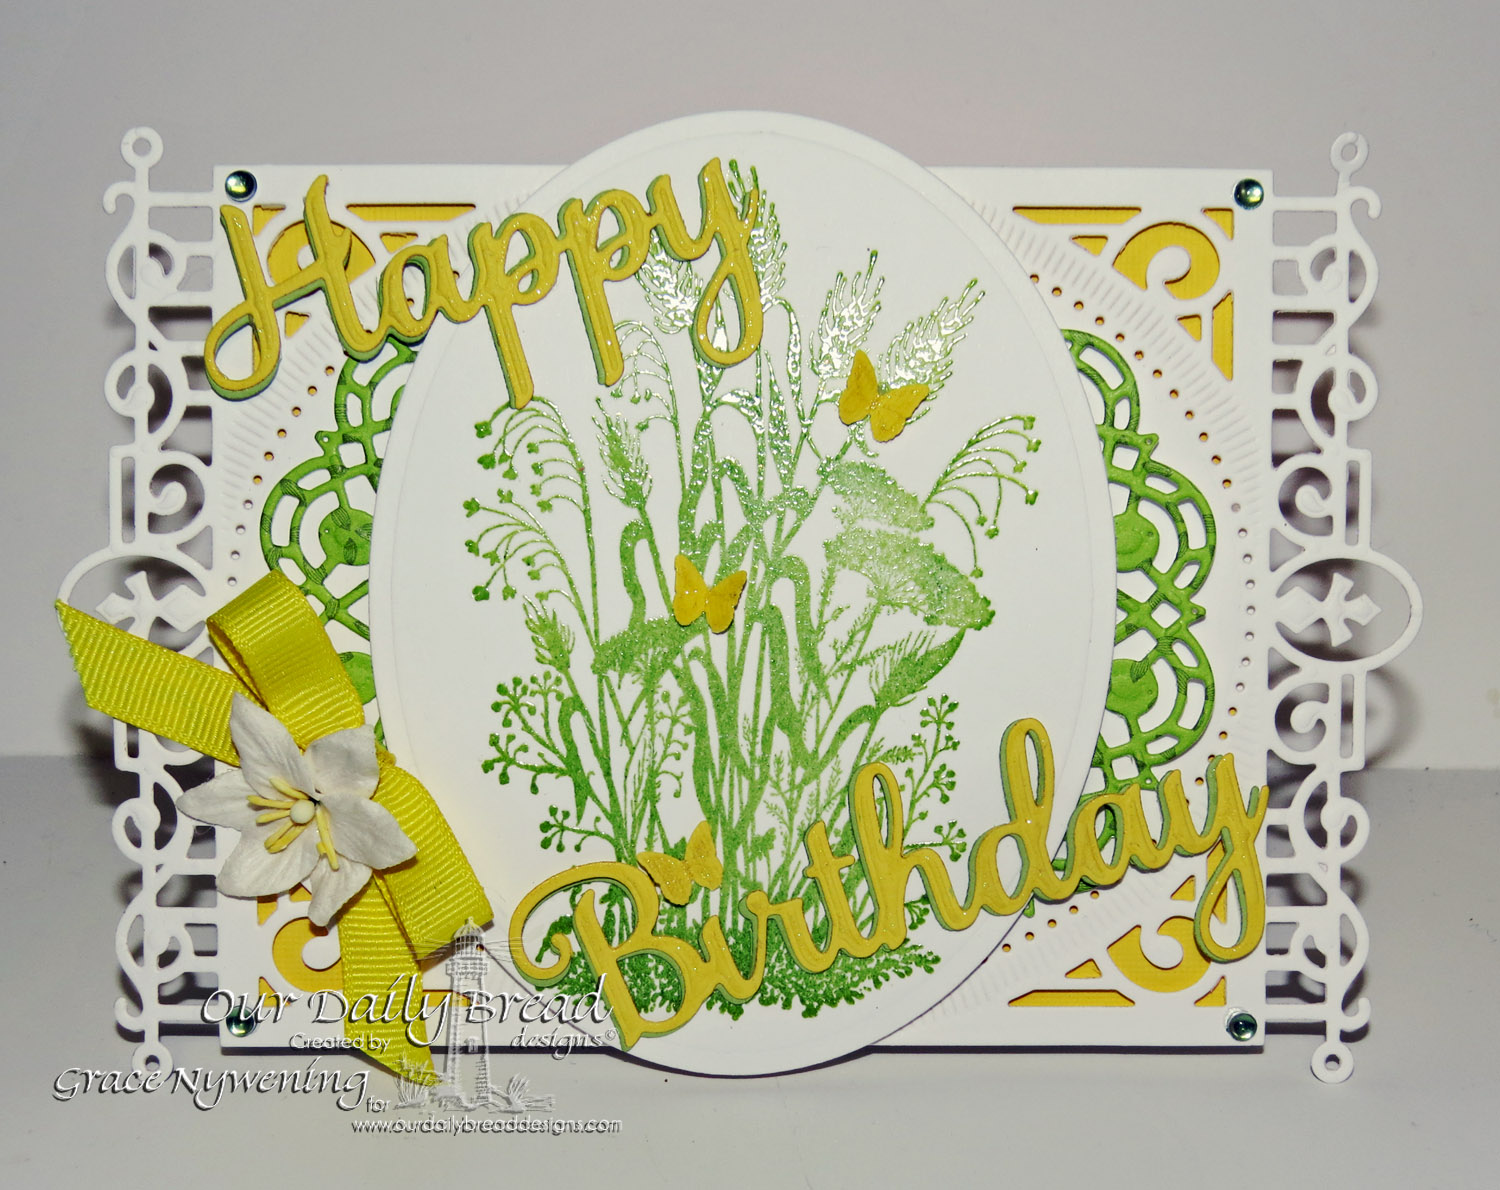 Stamps - Our Daily Bread Designs Miss You, ODBD Custom Doily Die, ODBD Custom Happy Birthday Dies